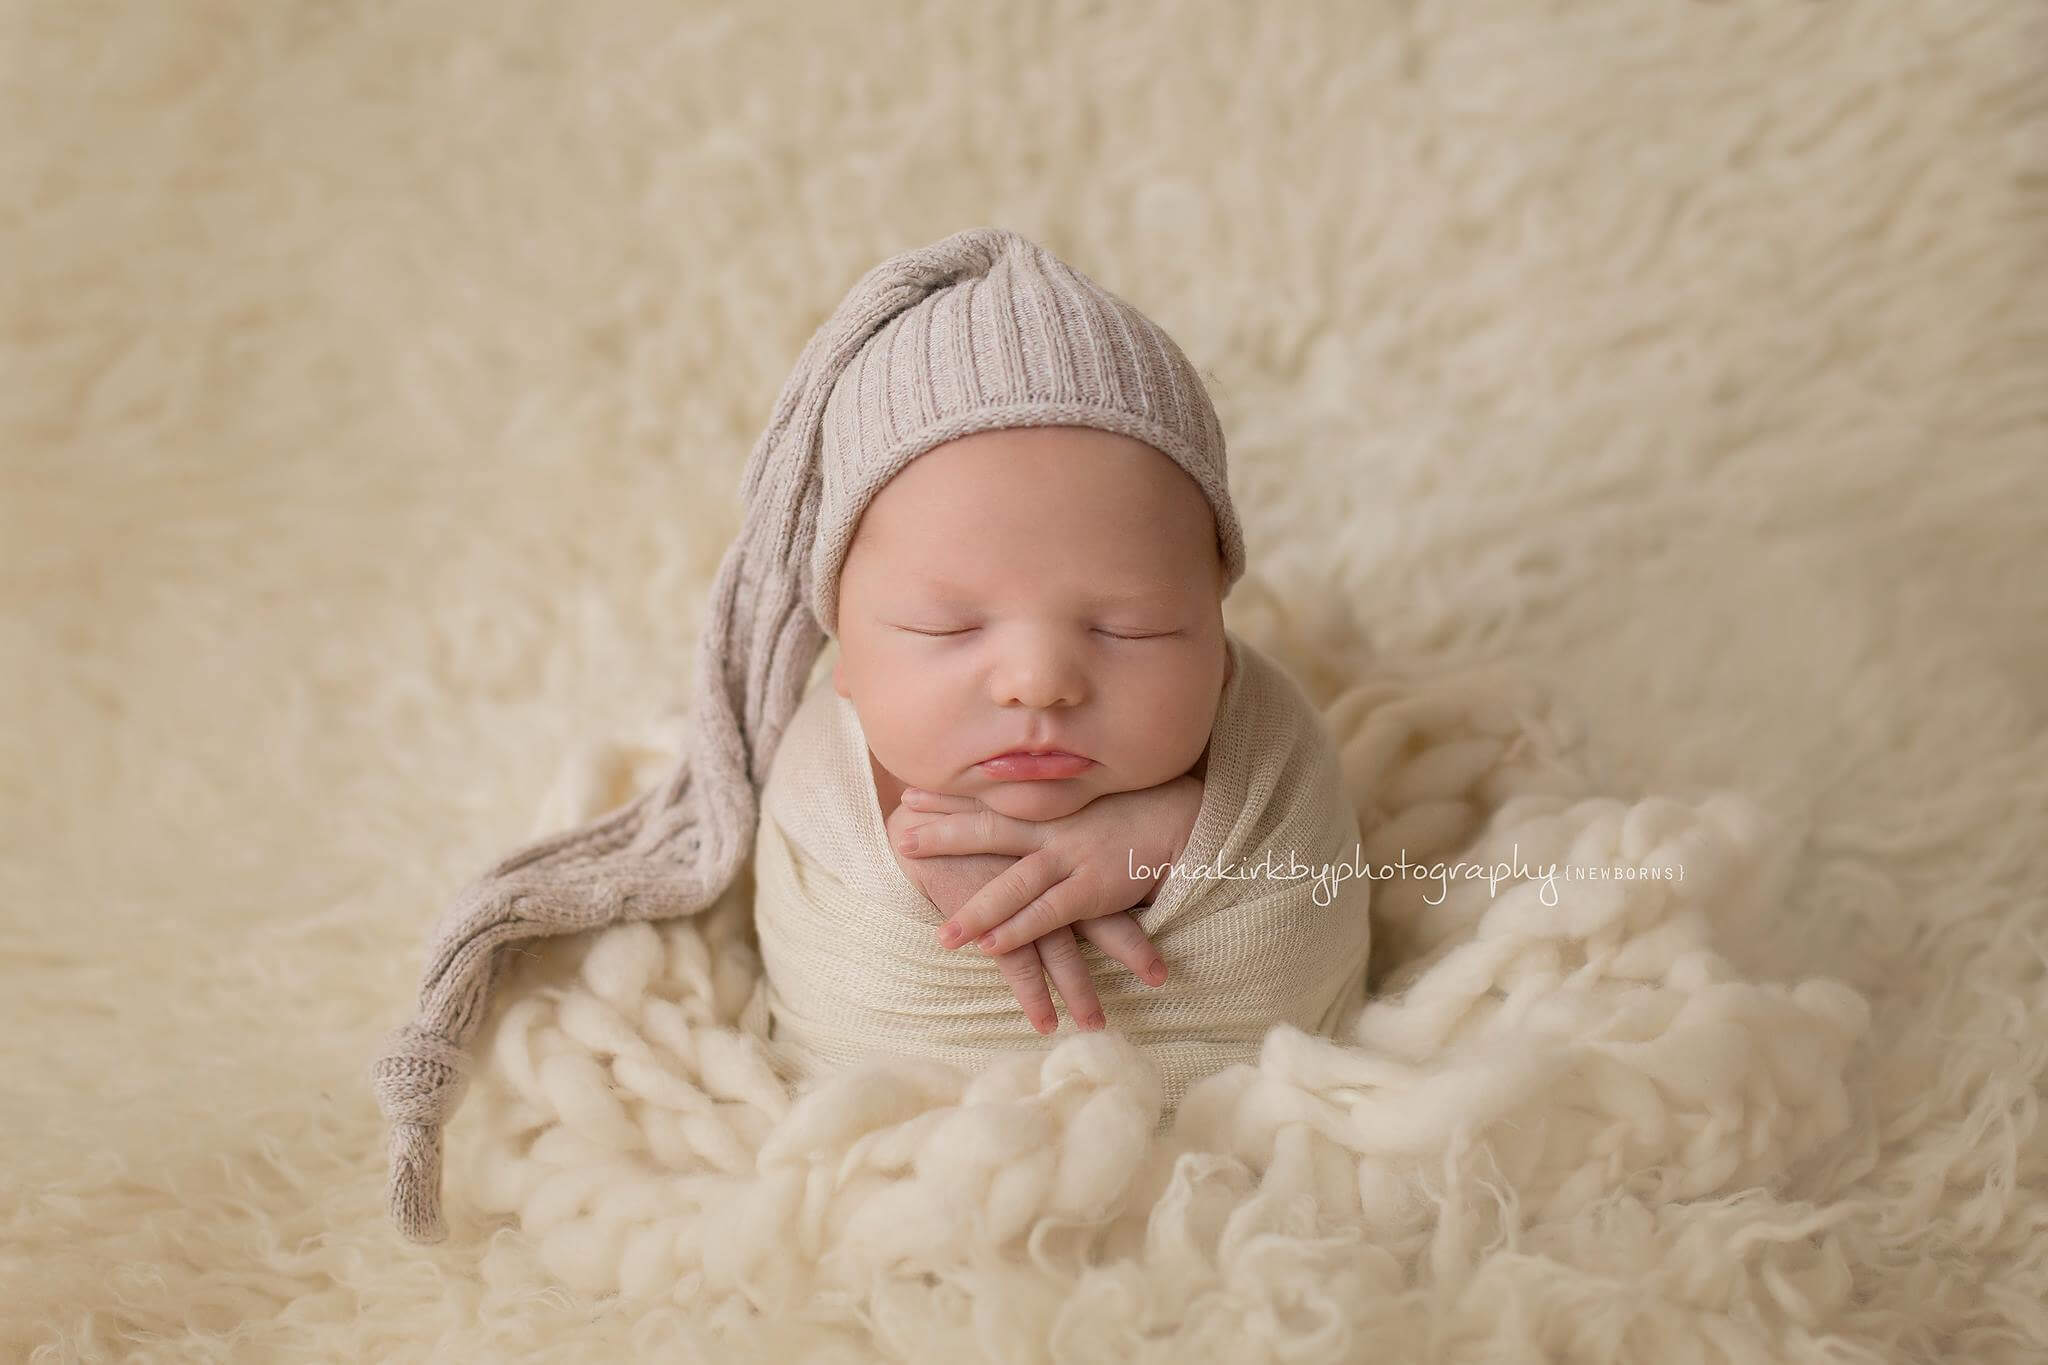 Newborn Photos, 28 Dec, Banjo